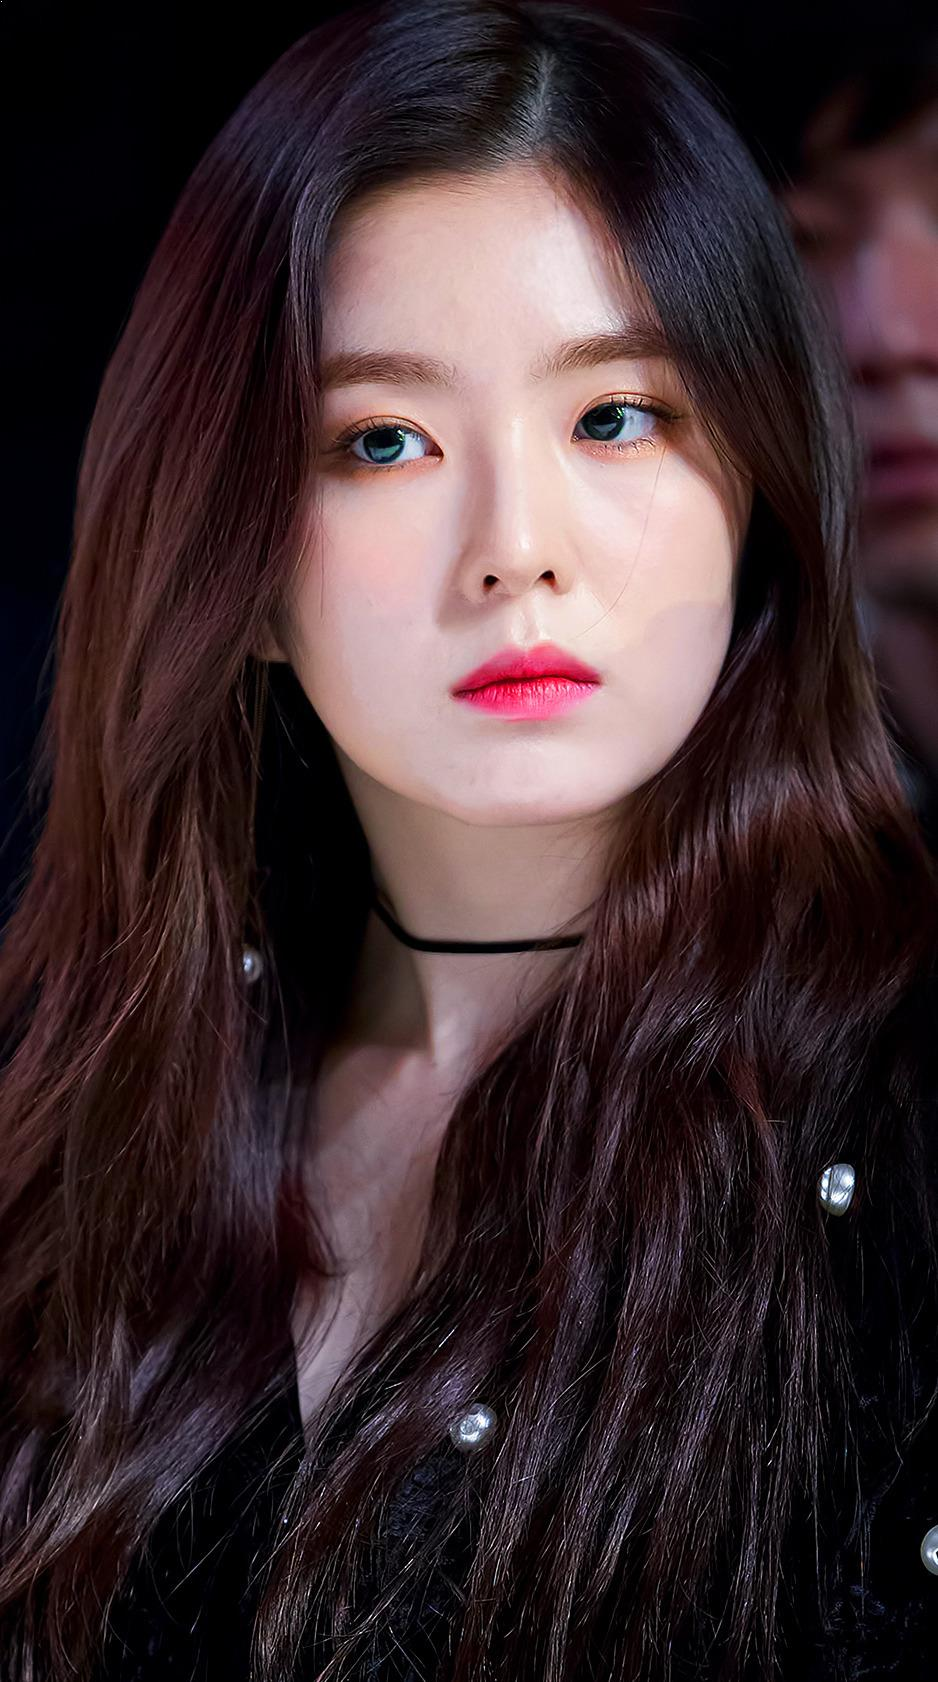 Red Velvet Irene Glare, Red Velvet Irene Profile, Red Velvet Irene, KPop Idol Glare